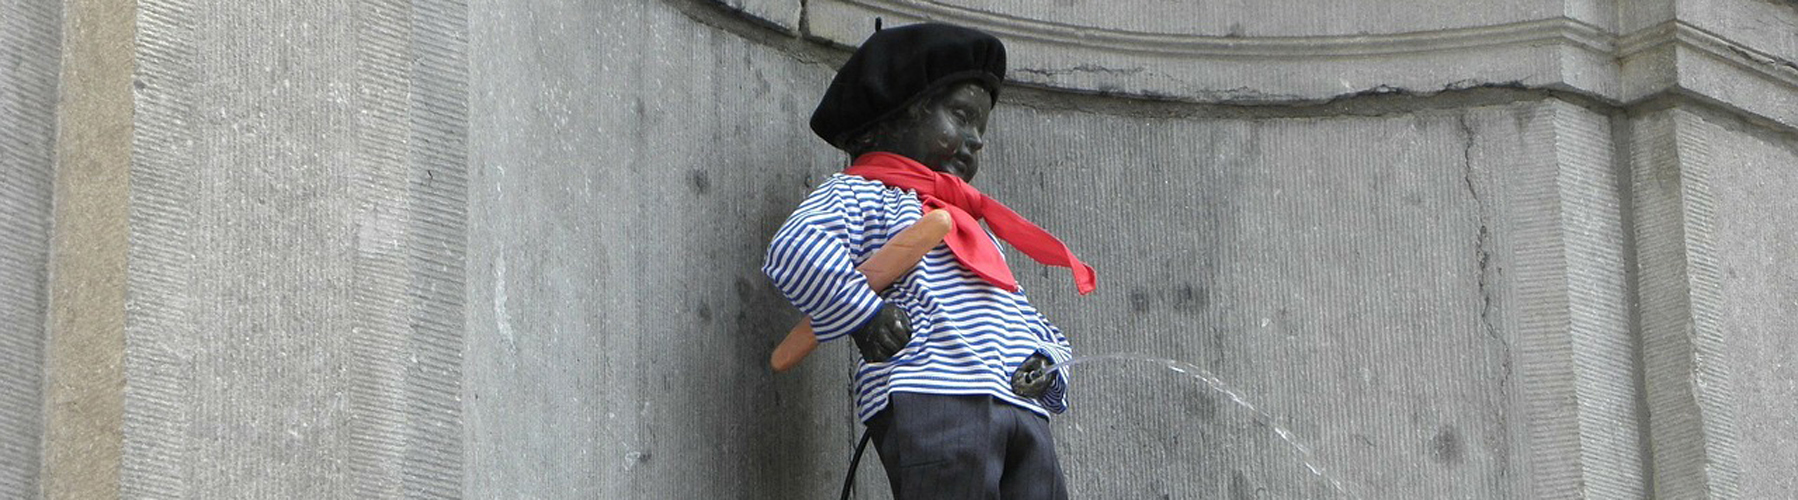 Brussels – Apartments close to Manneke Pis. Maps of Brussels, Photos and Reviews for each Apartment in Brussels.